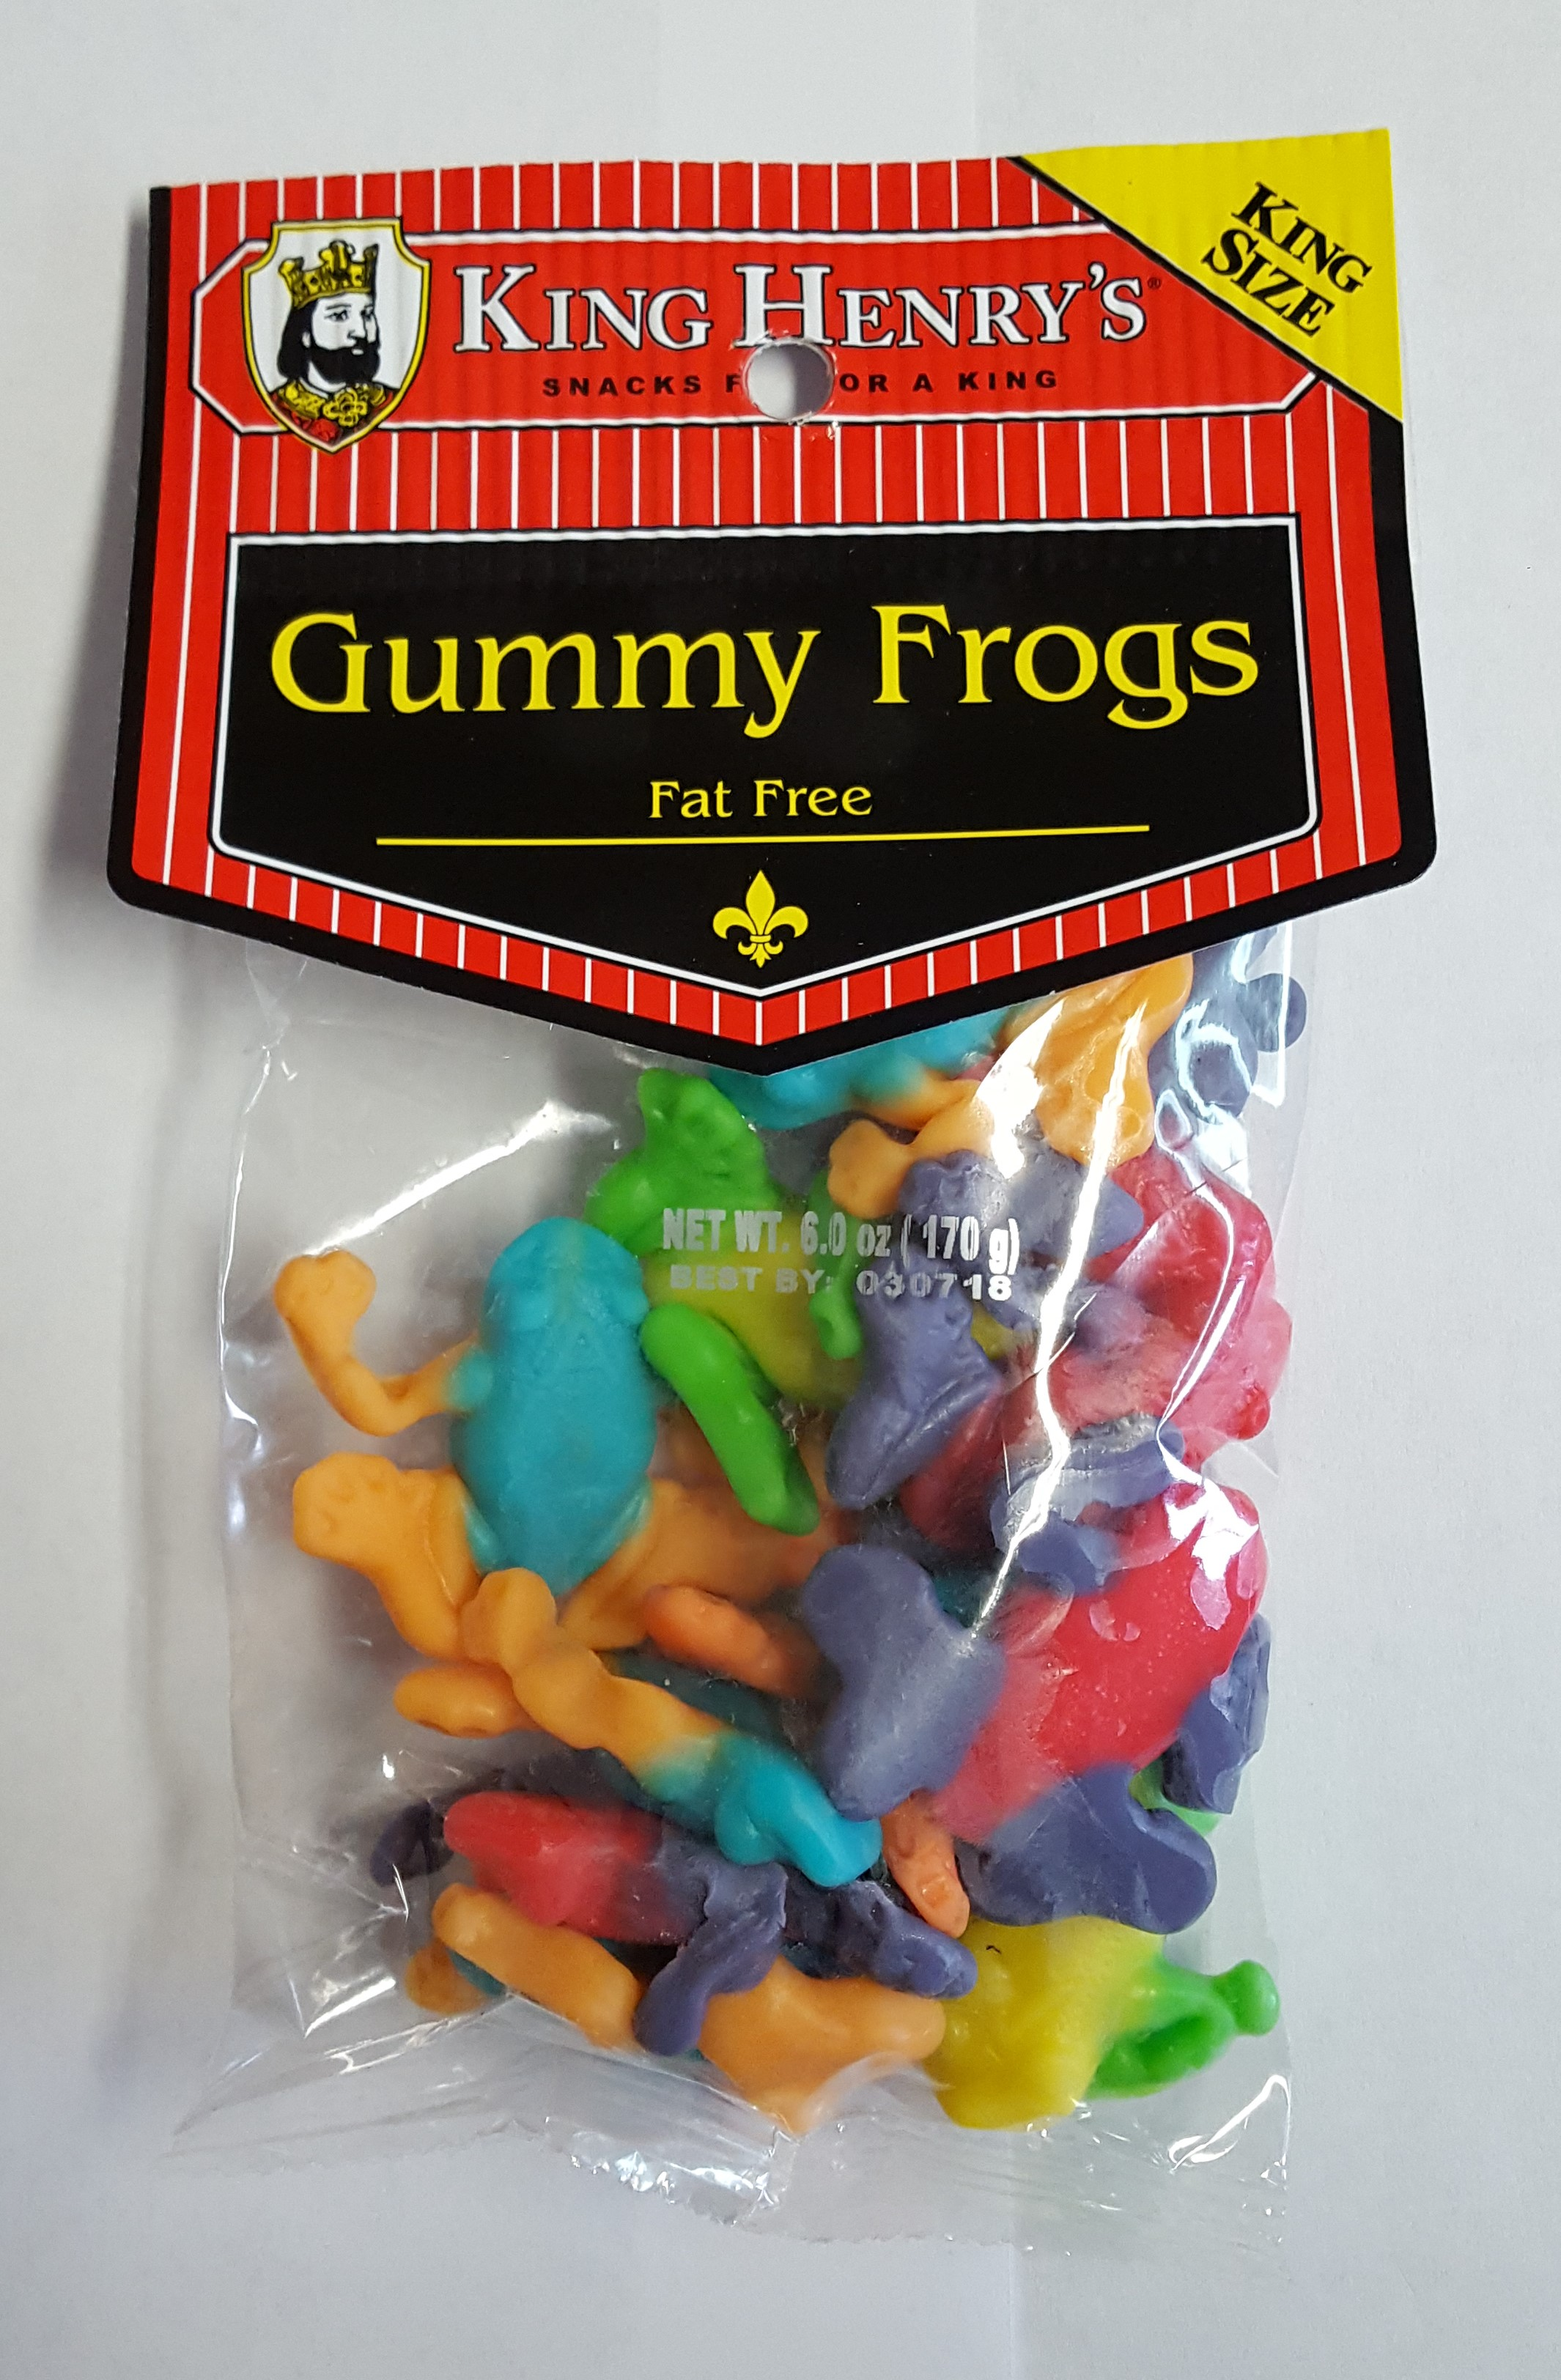 King Henry's Gummy Frogs